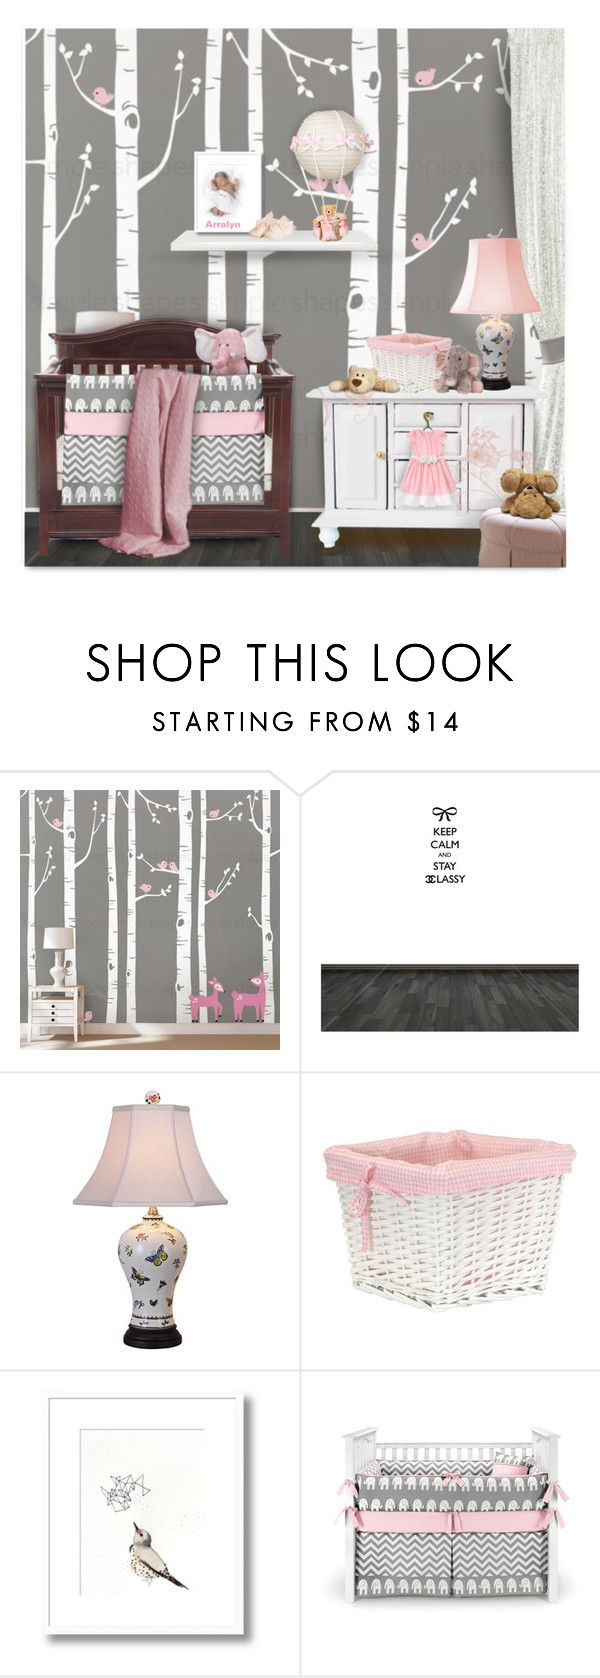 """""""Nursery"""" by passion-fashion-2 ❤ liked on Polyvore featuring interior, interiors, interior design, home, home decor, interior decorating, Universal Lighting and Decor, Redmon, Ganz and Gymboree"""